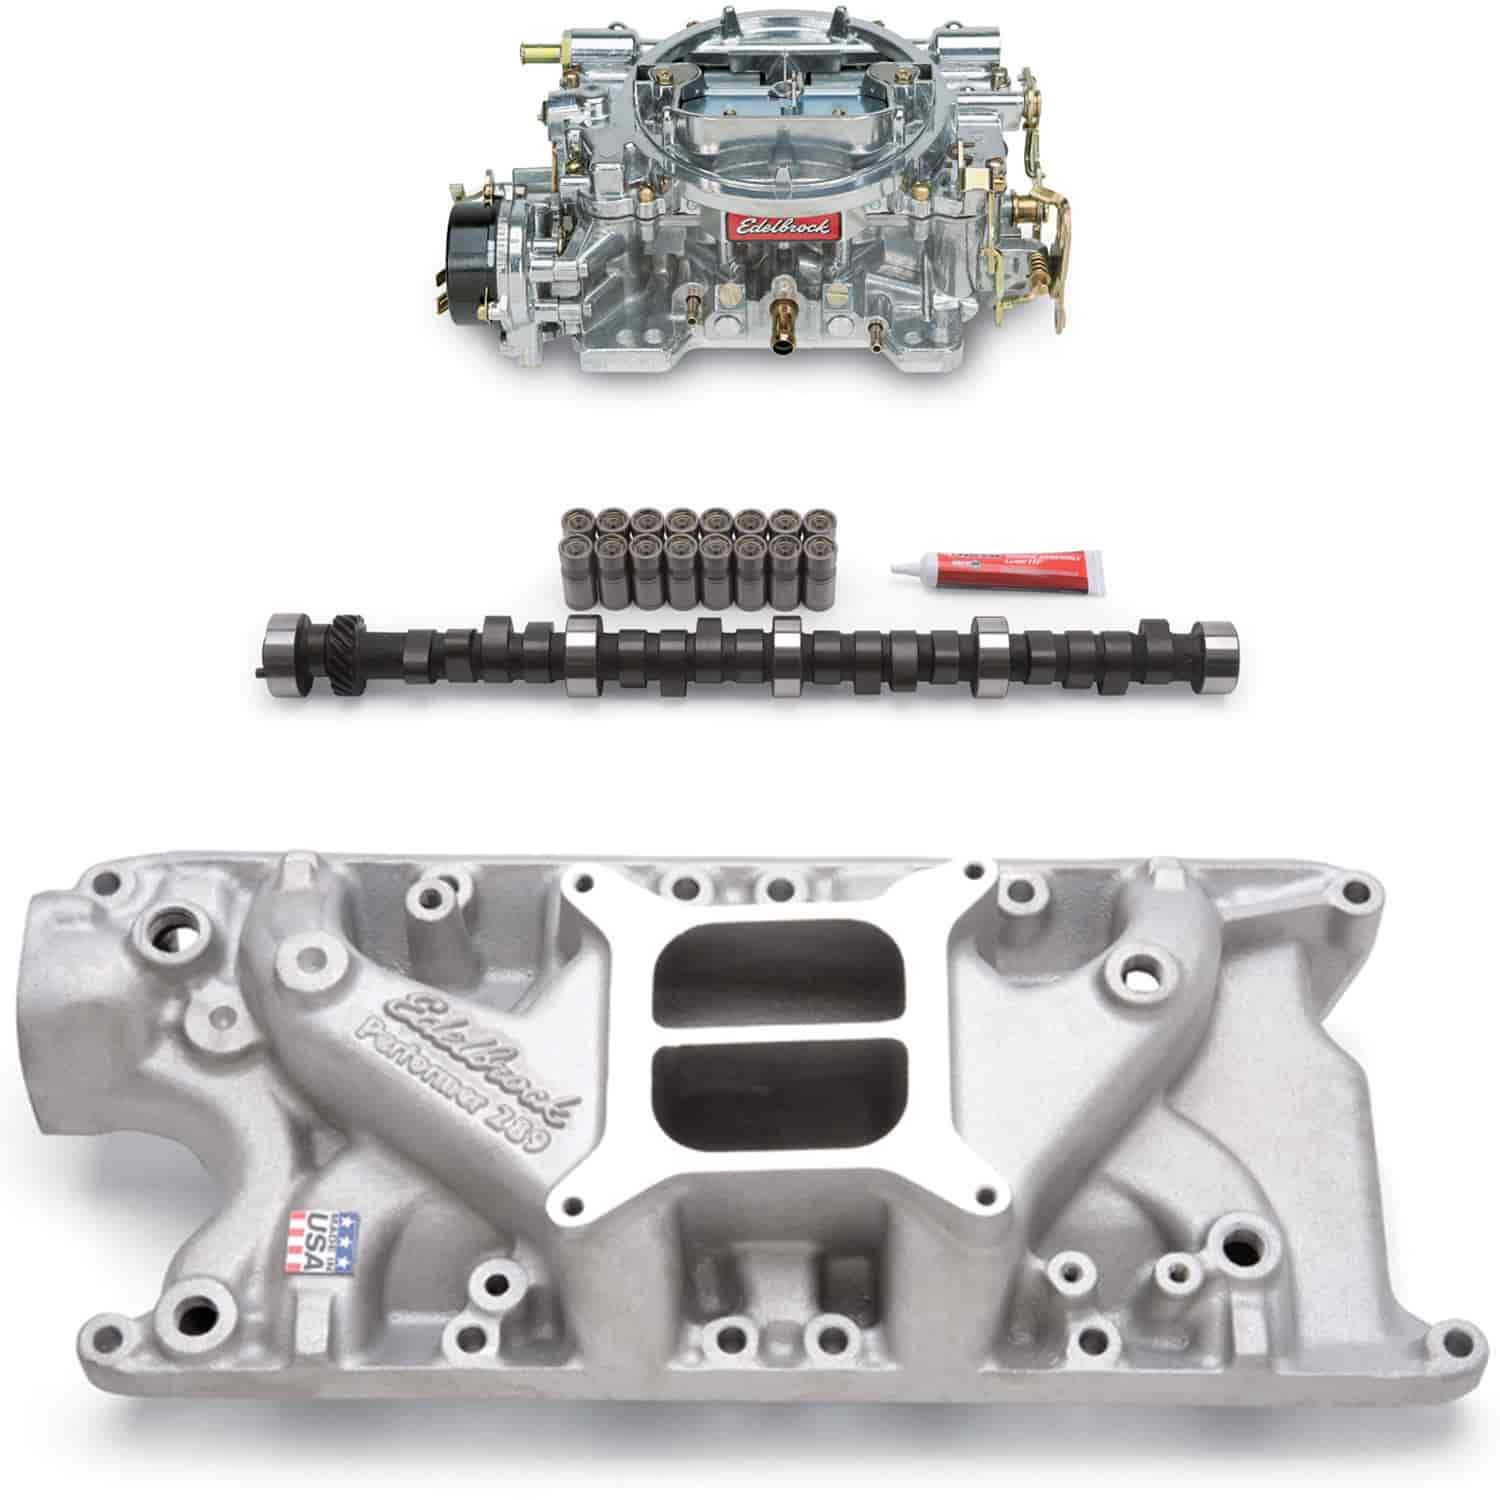 Edelbrock Performer Power Package Intake Manifold, Carburetor and Camshaft  Kit Small Block Ford 260-289-302ci